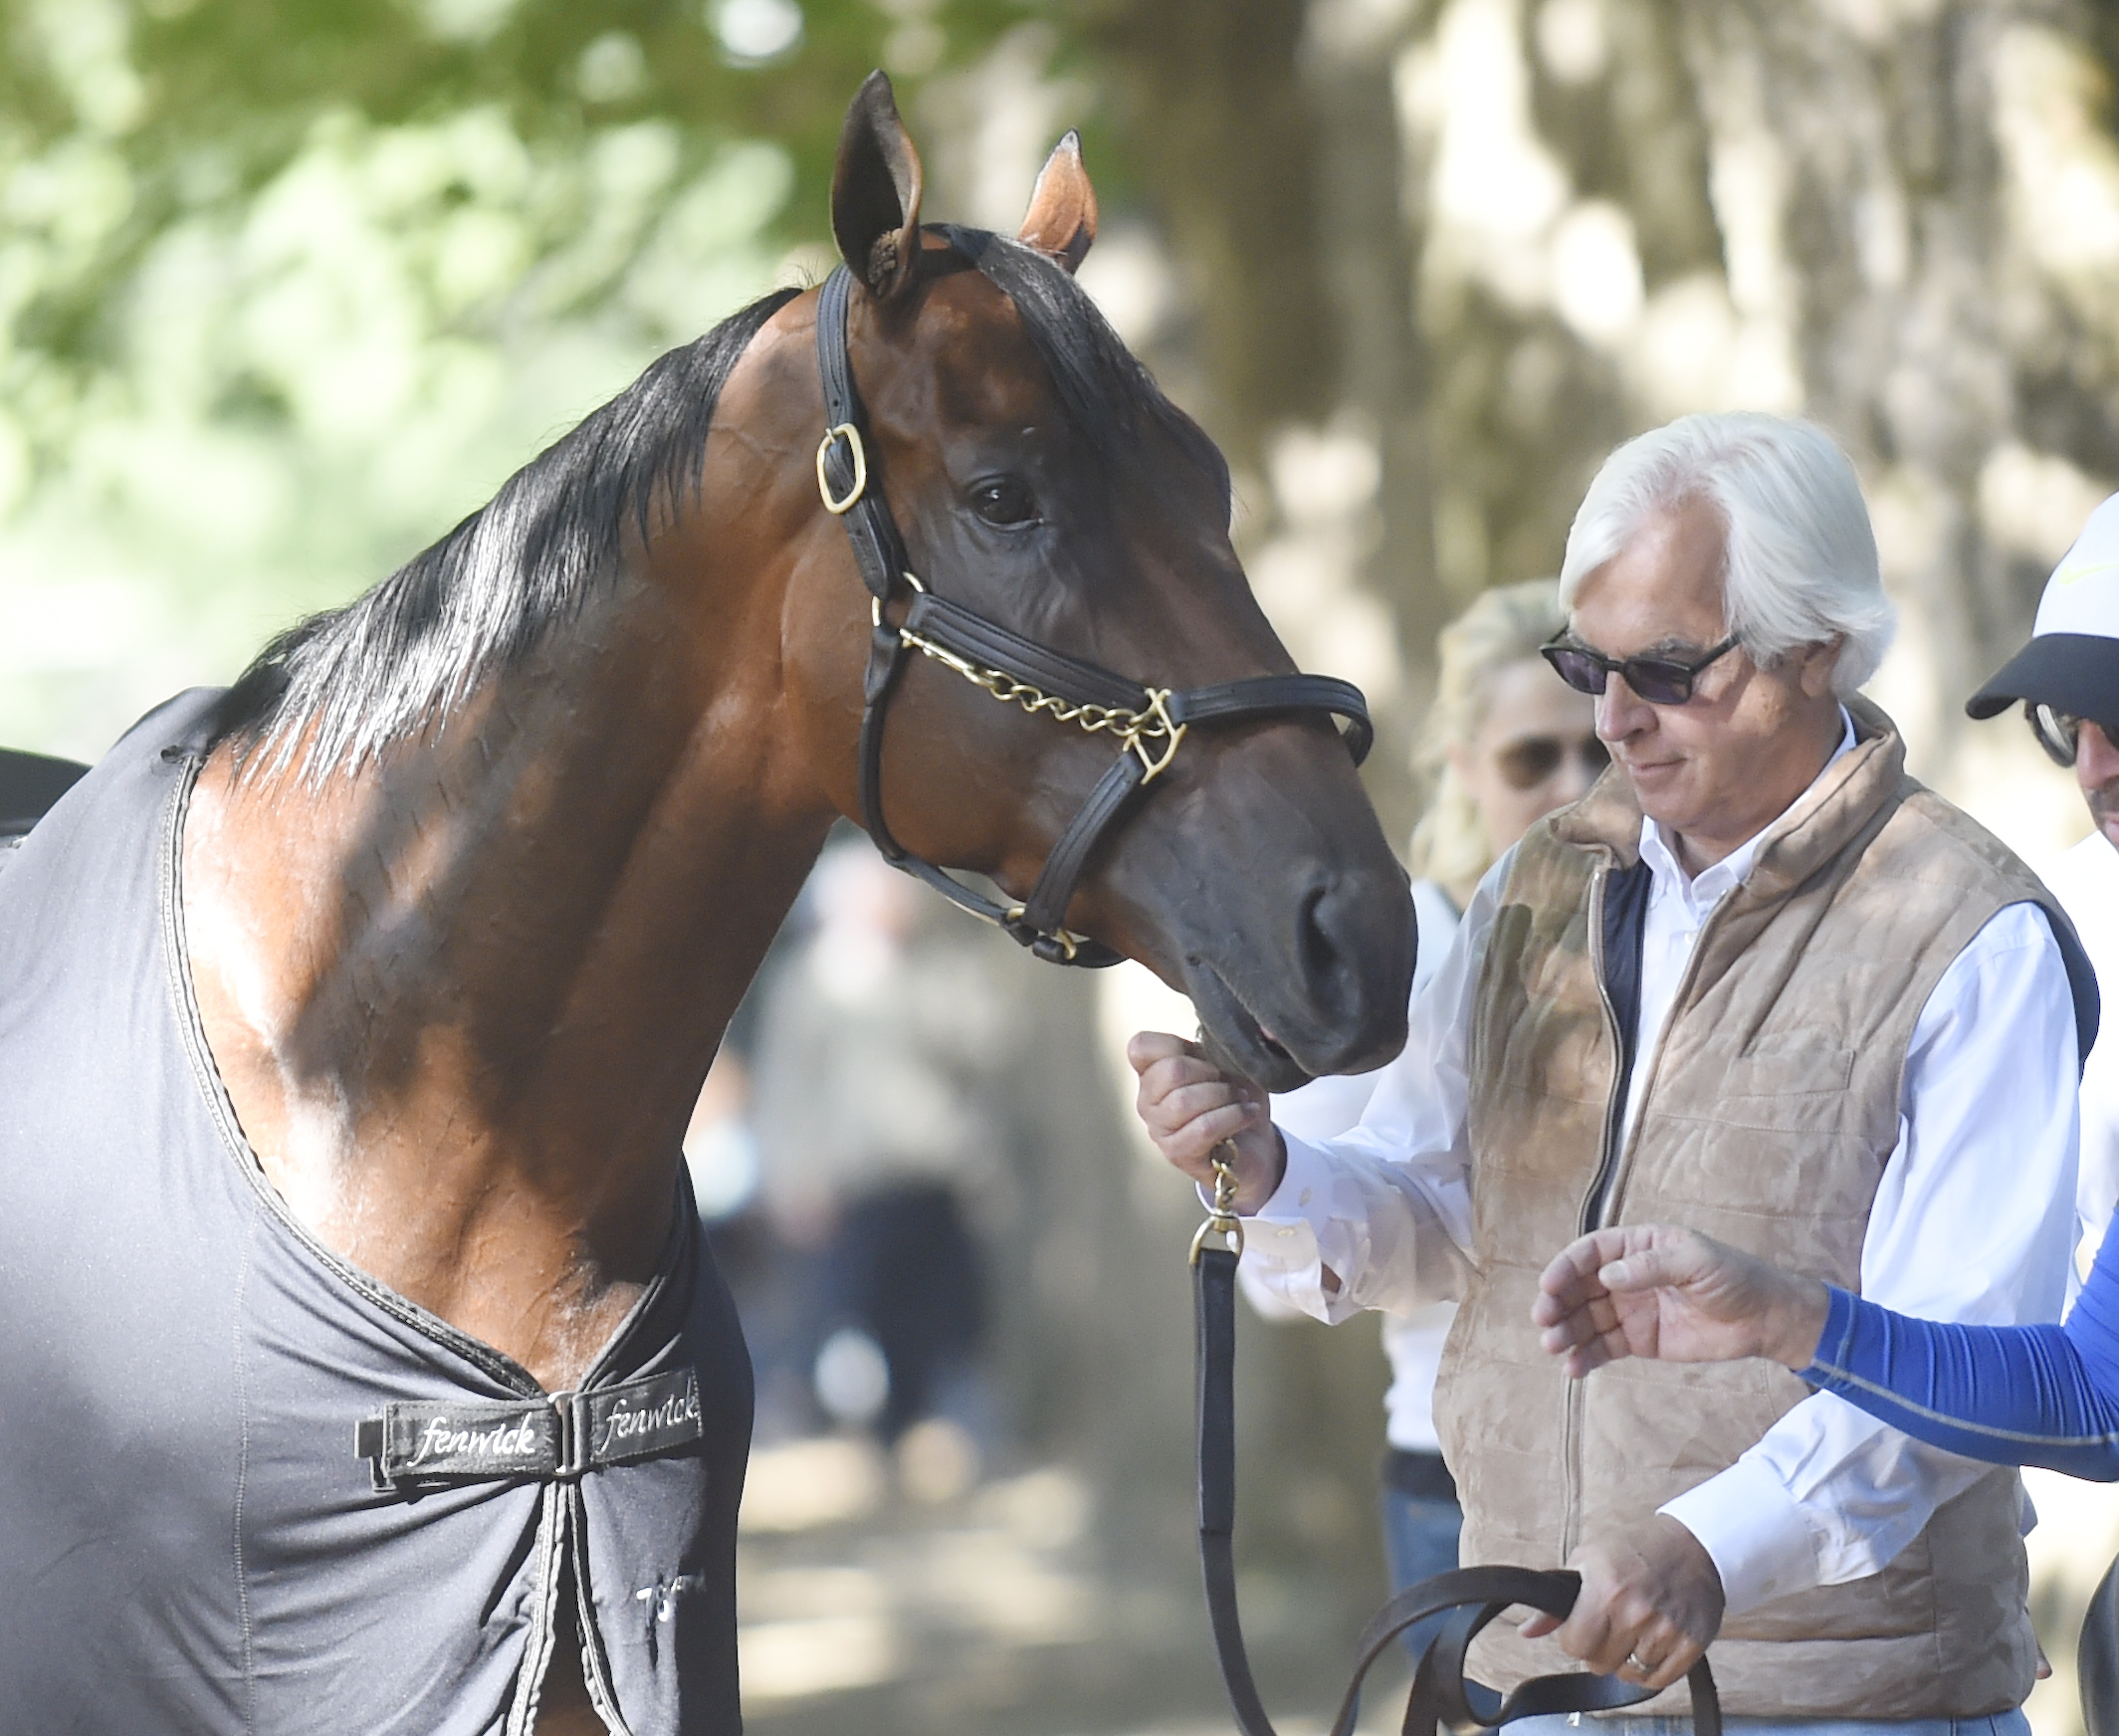 Trainer Bob Baffert holds Triple Crown winner American Pharoah after a workout at Saratoga Race Course on Friday, Aug. 28, 2015, in Saratoga Springs, N.Y. American Pharoah is the overwhelming 1-5 favorite in a 10-horse field for Saturday's Travers Stakes